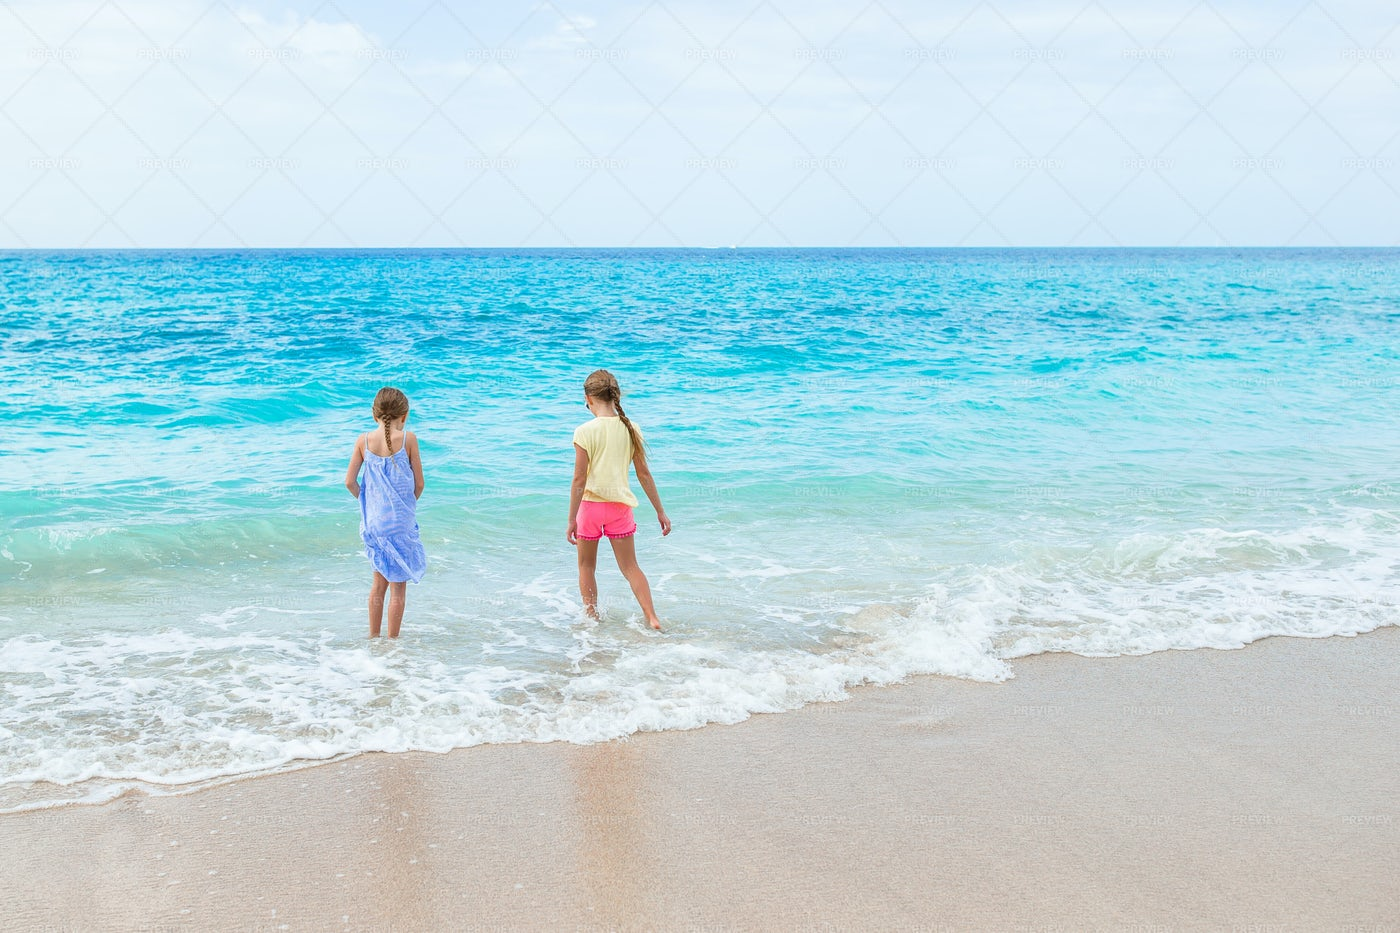 Friends Stand In Shallow Water: Stock Photos